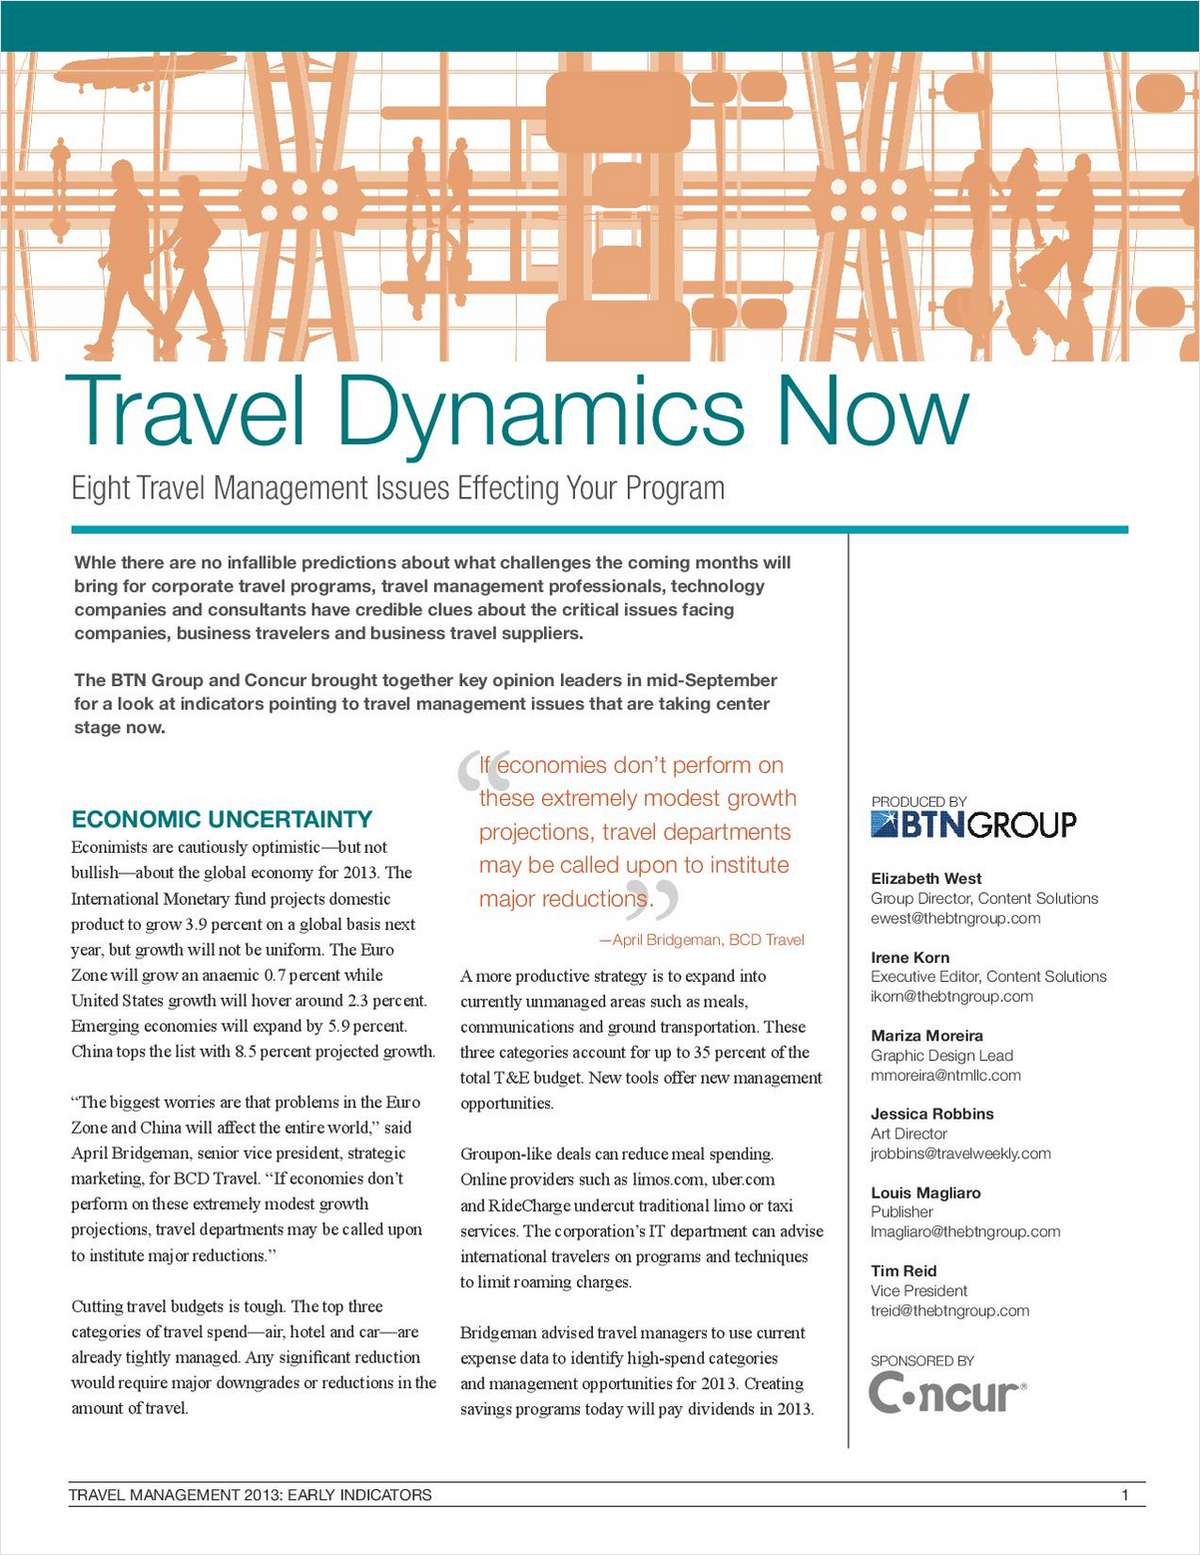 Travel Dynamics Now - Eight Travel Management Issues Effecting Your Program